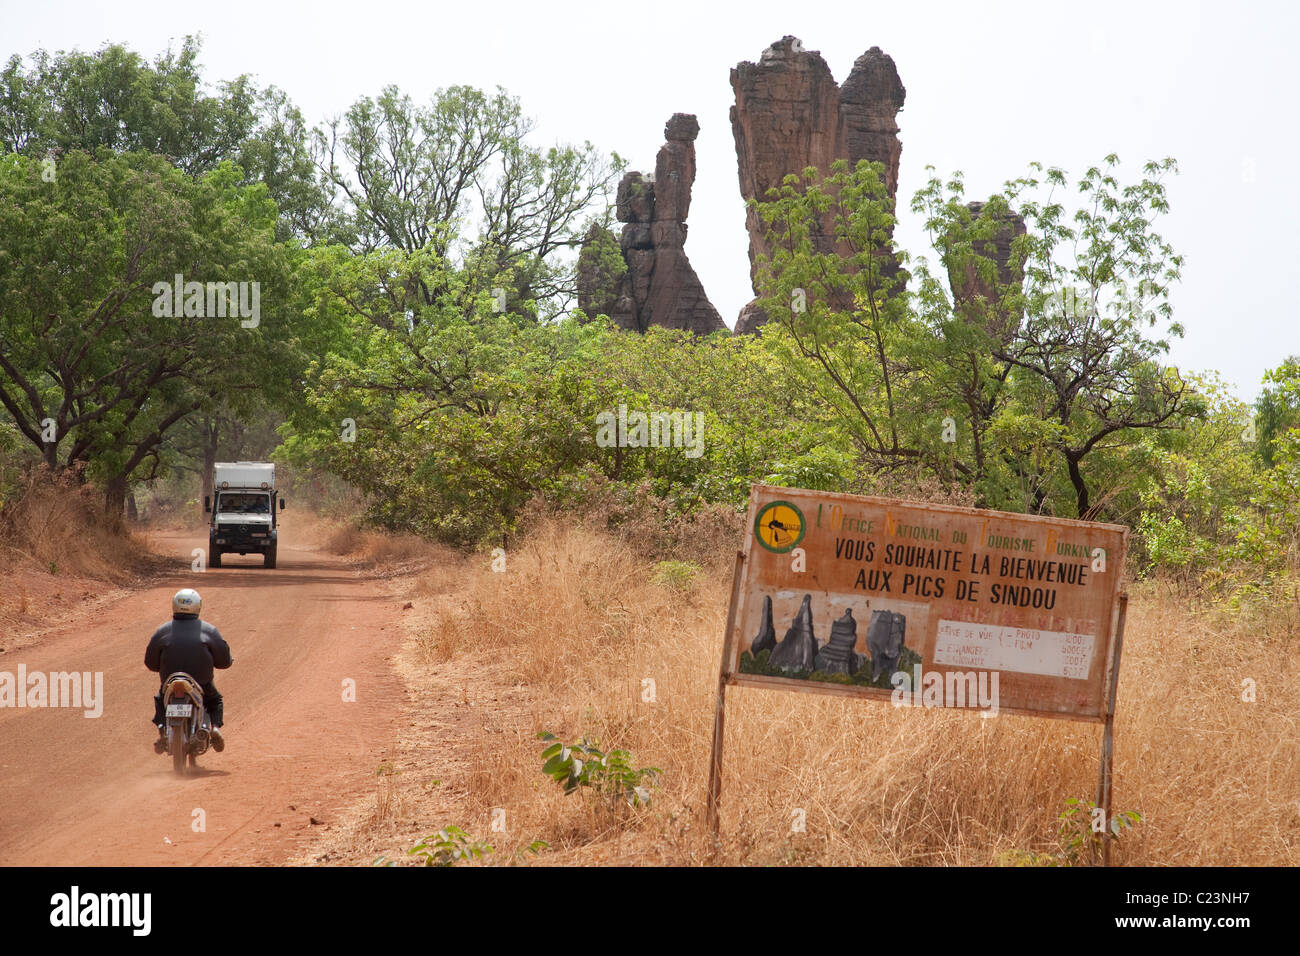 The road sign for the Sindou Peaks on route between Banfora and Bobo Dioulasso - Stock Image